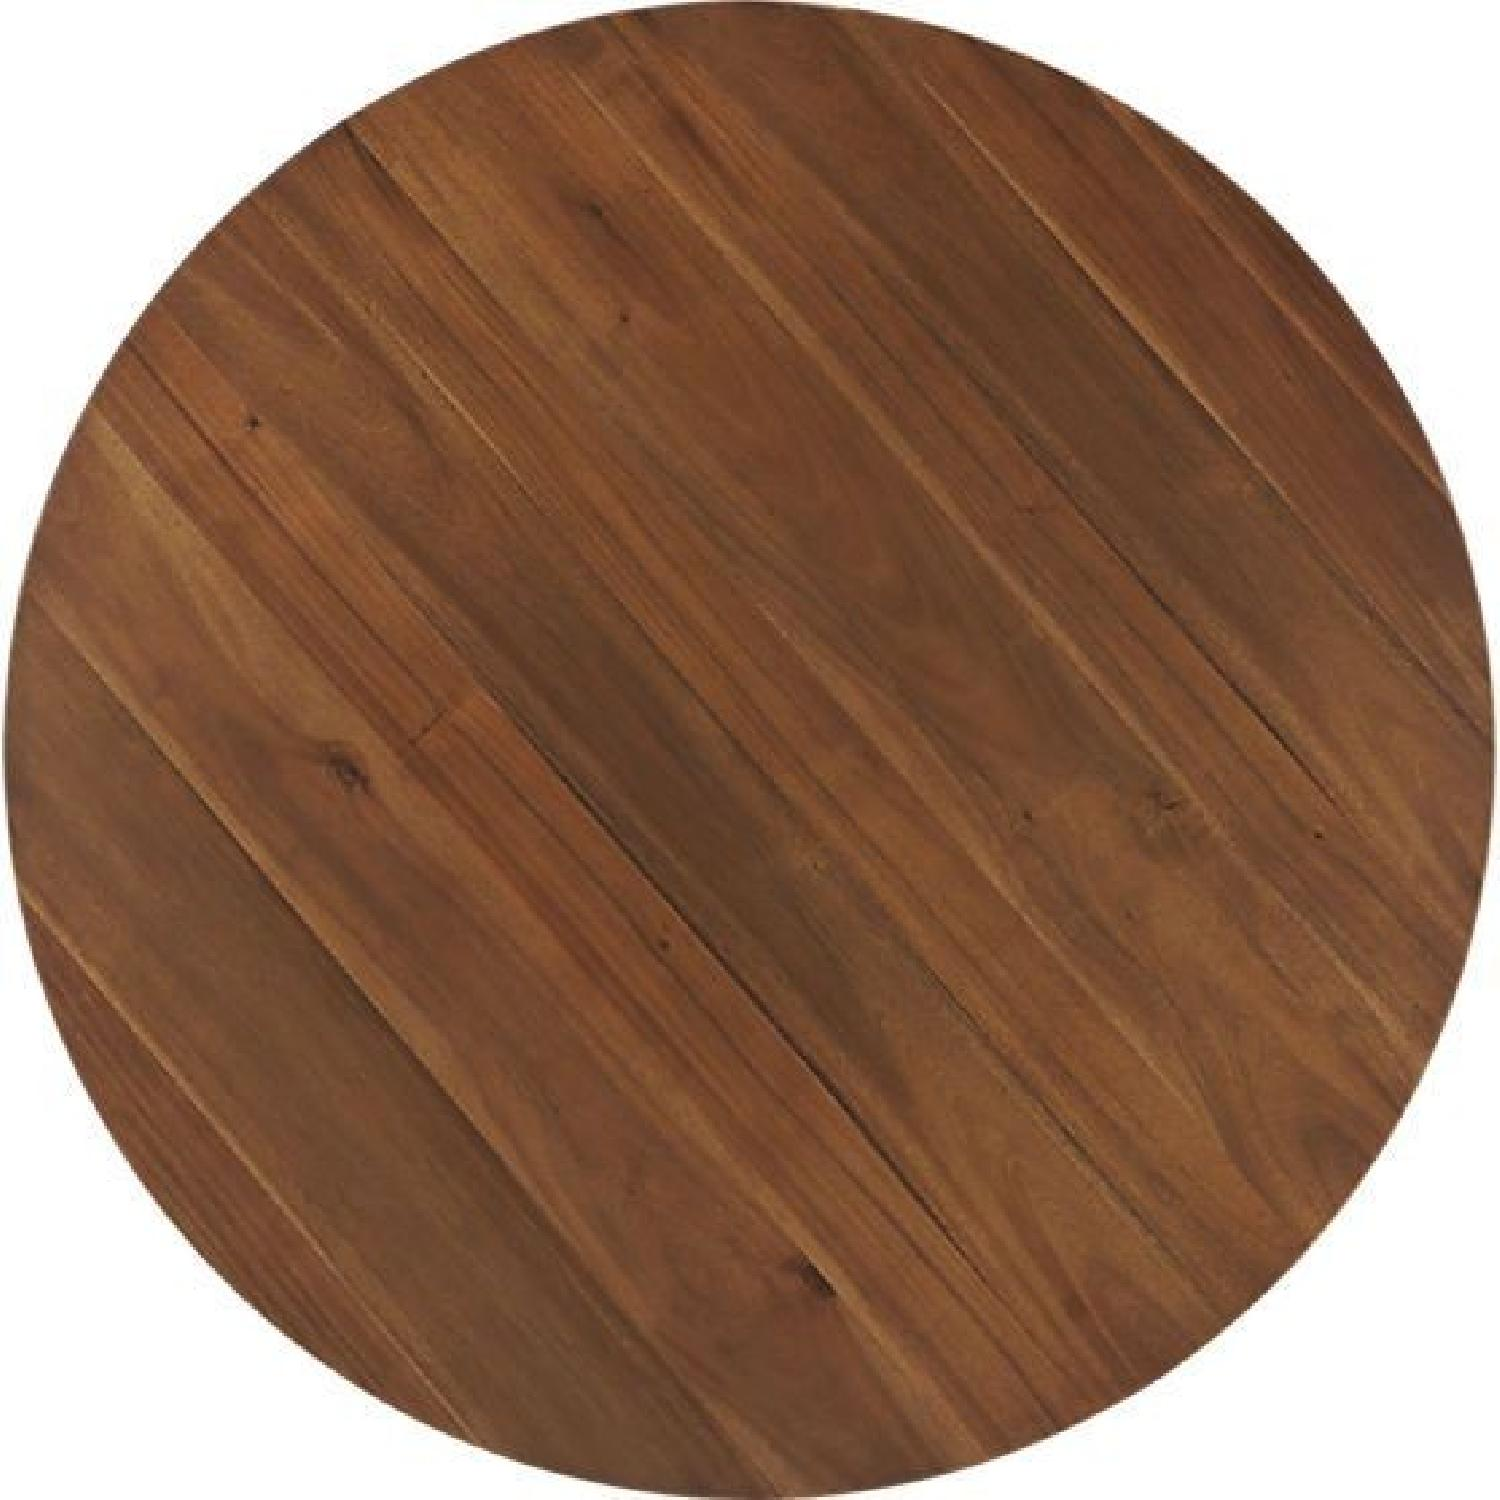 CB2 Claremont Round Wood Dining Table-4